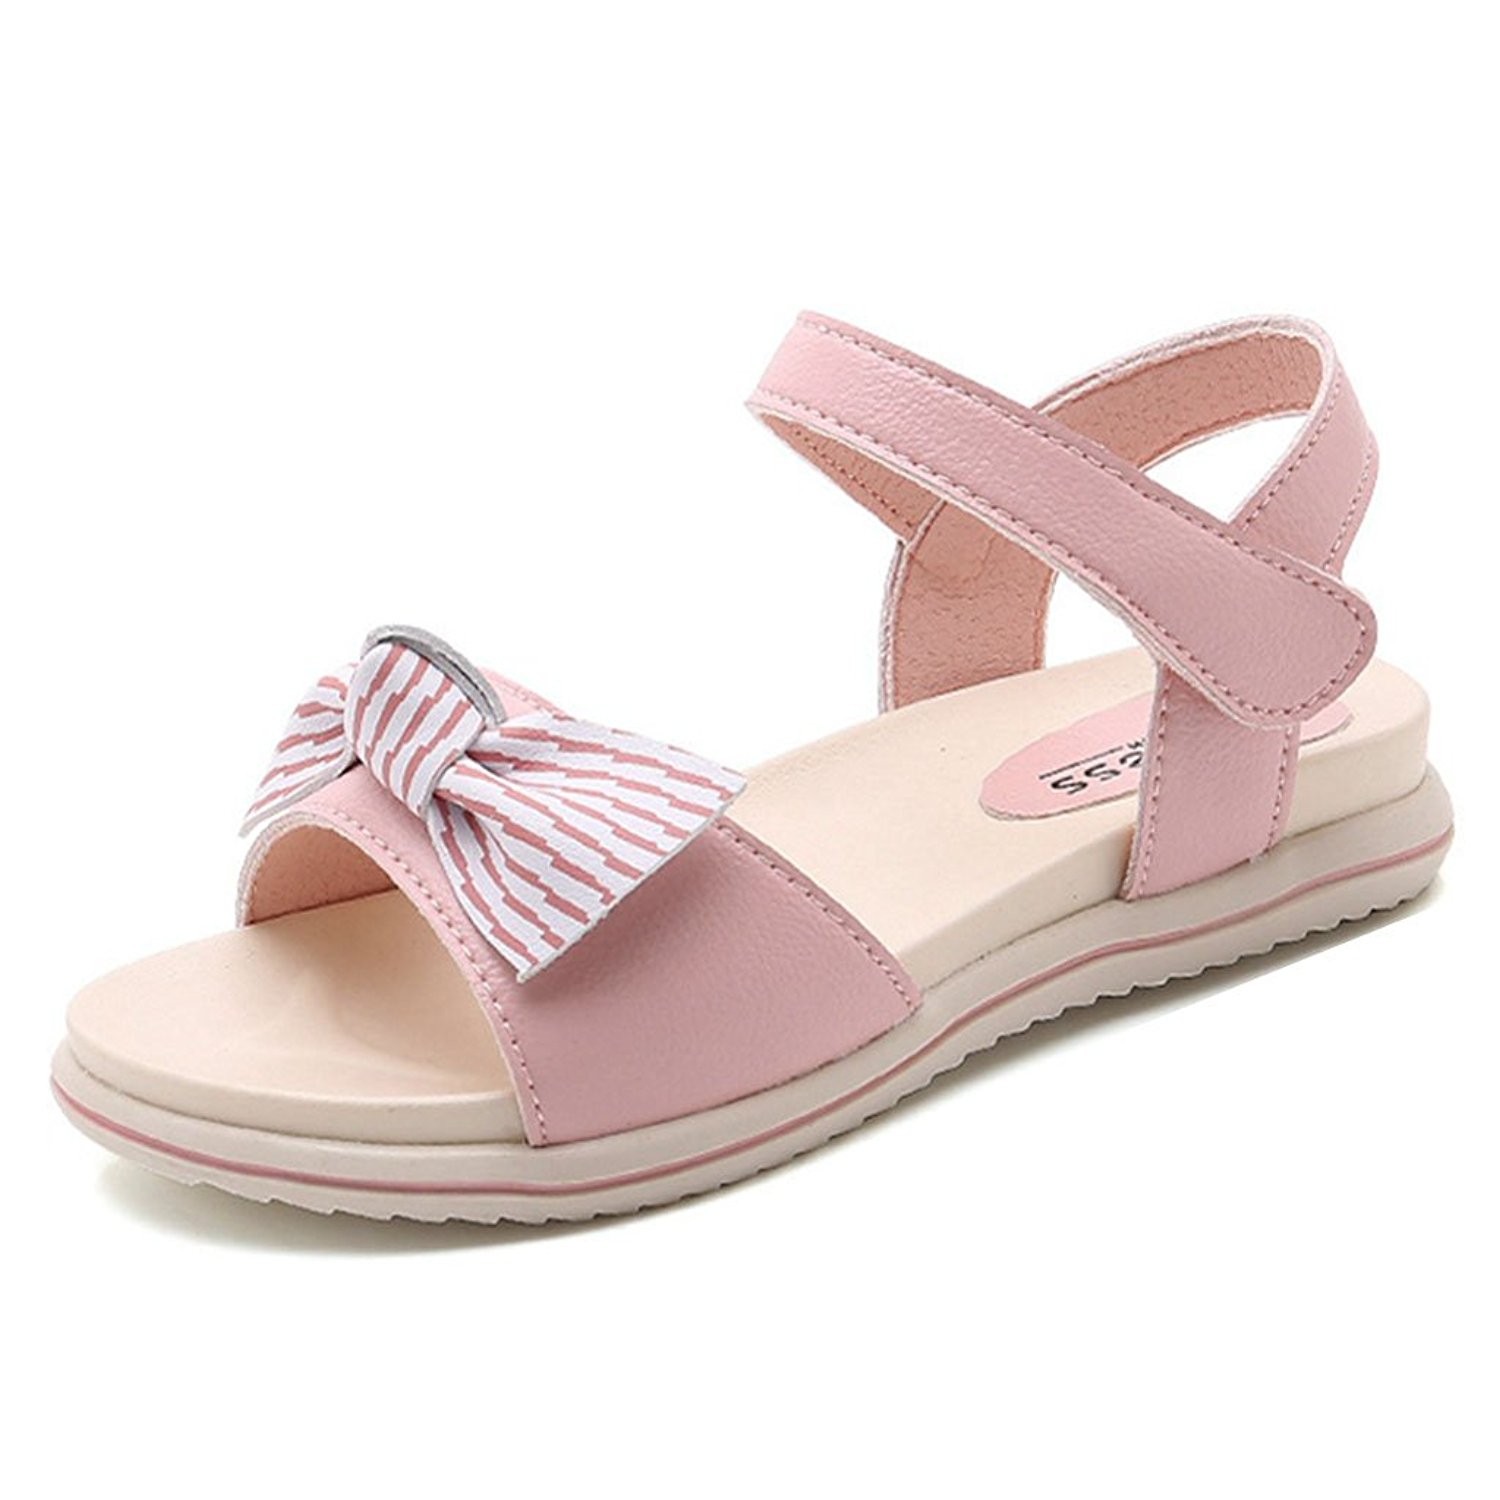 a0e8e43389b2 Get Quotations · Girls Comfort Bowknot Summer Outdoor Flat Sandals Soft  Open Toe Princess Flat Shoes Kid Sandals